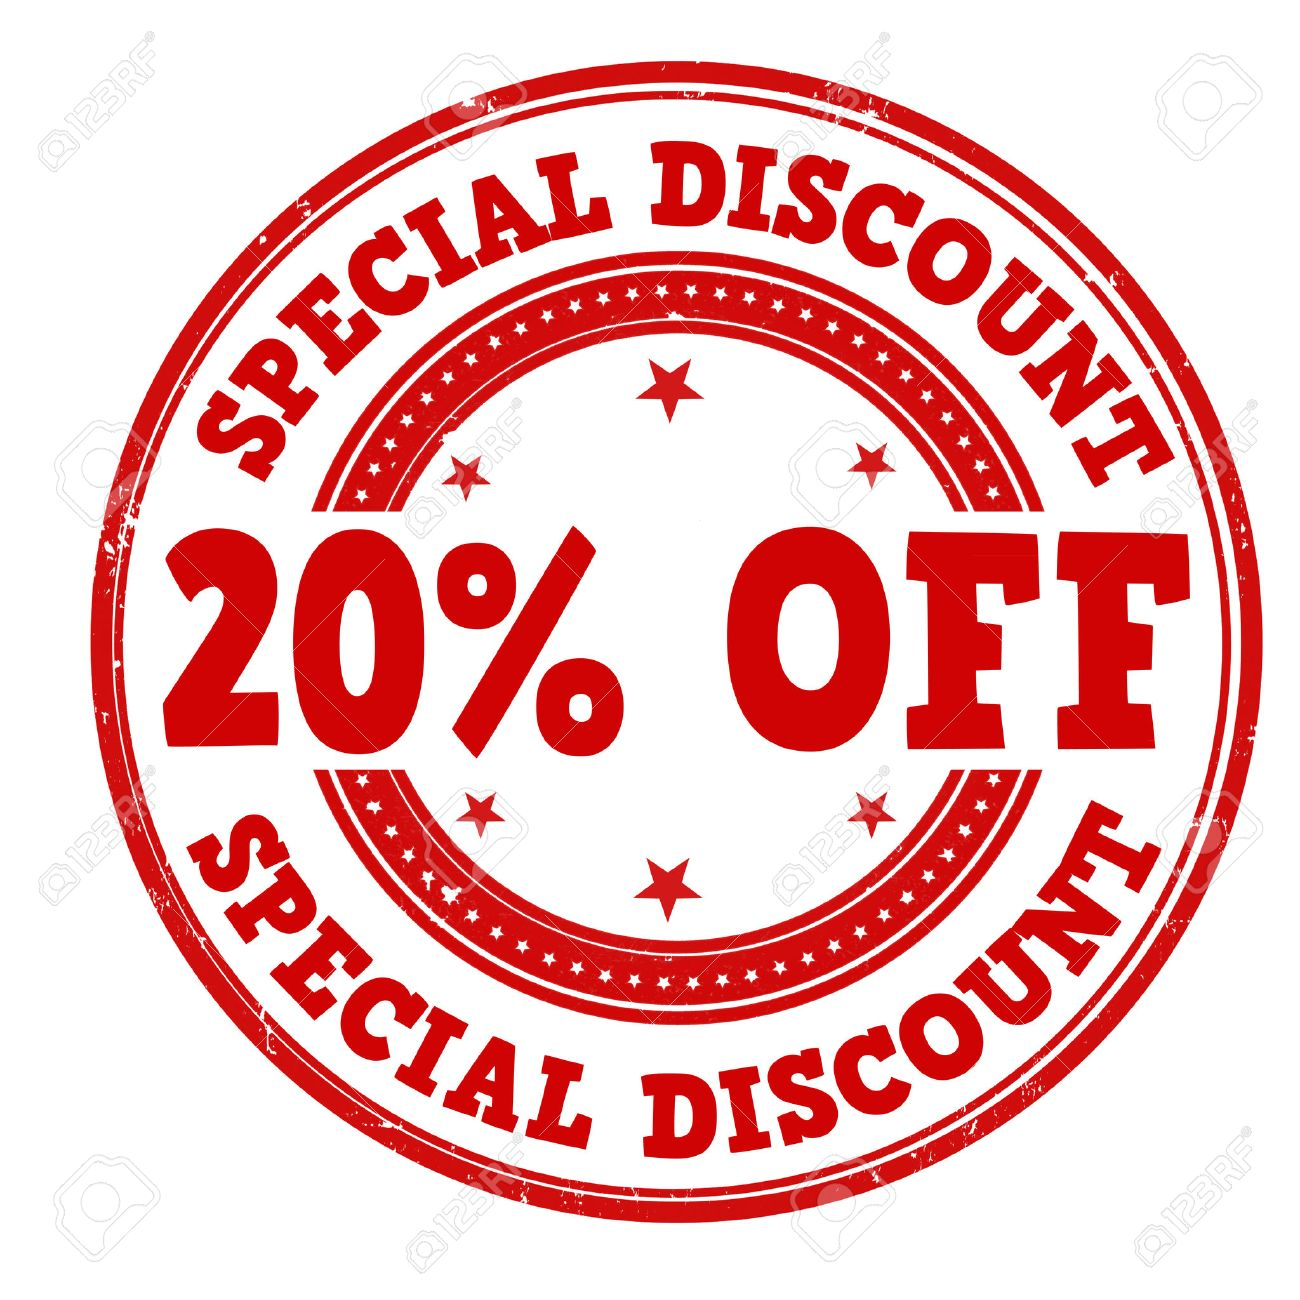 Image result for 20%